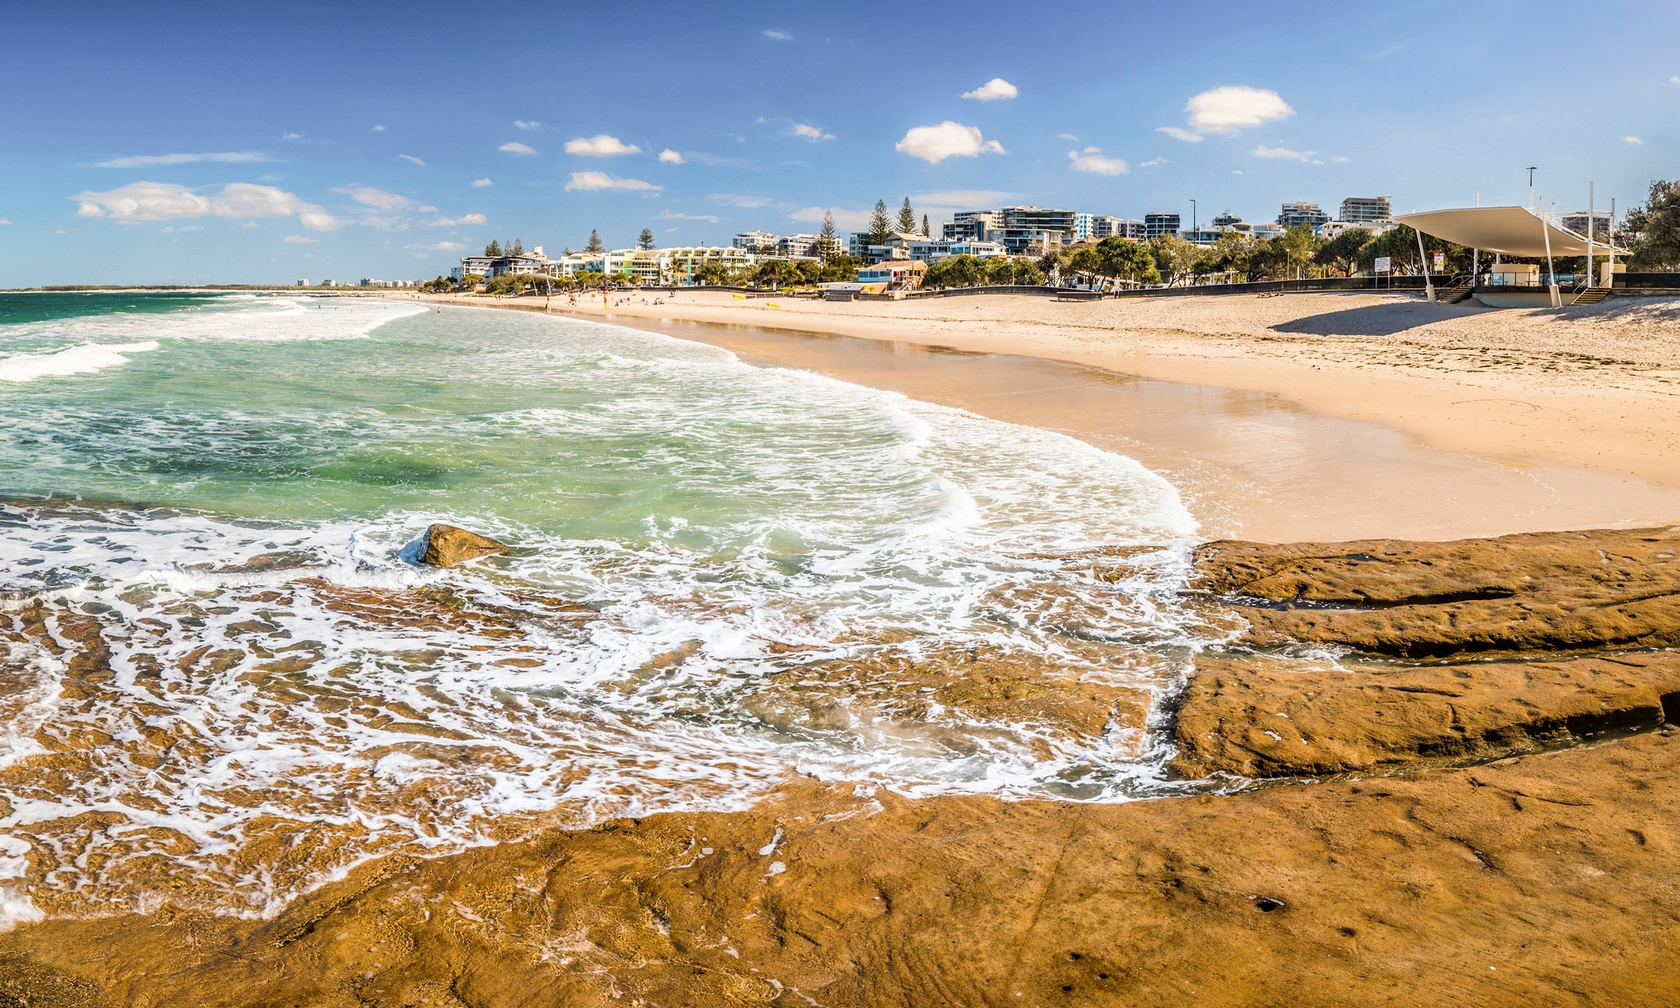 Holiday rental houses in Caloundra